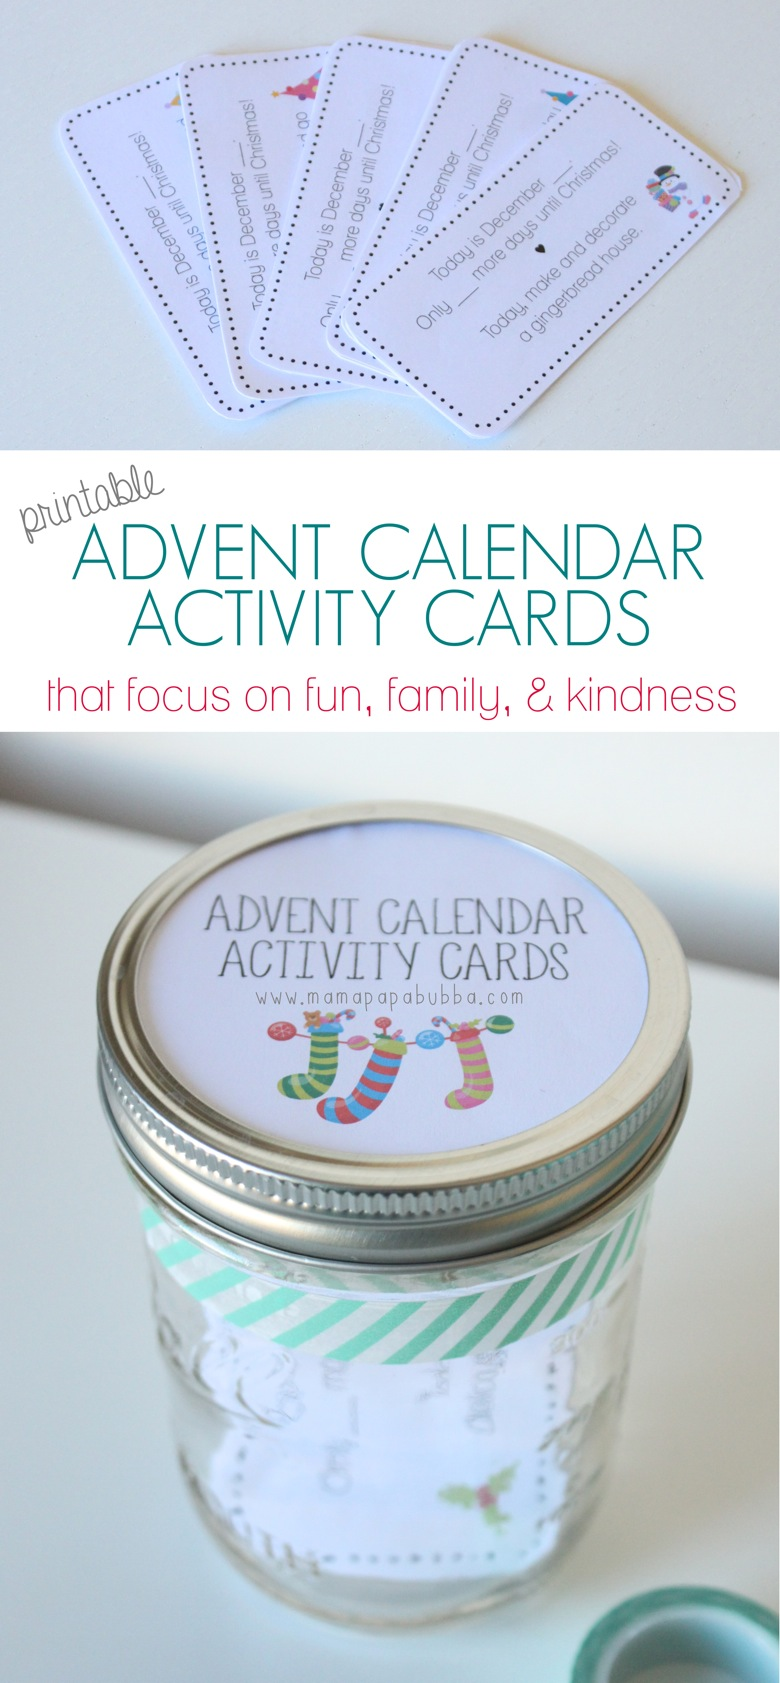 Printable Advent Calendar Activity Cards | Mama Papa Bubba